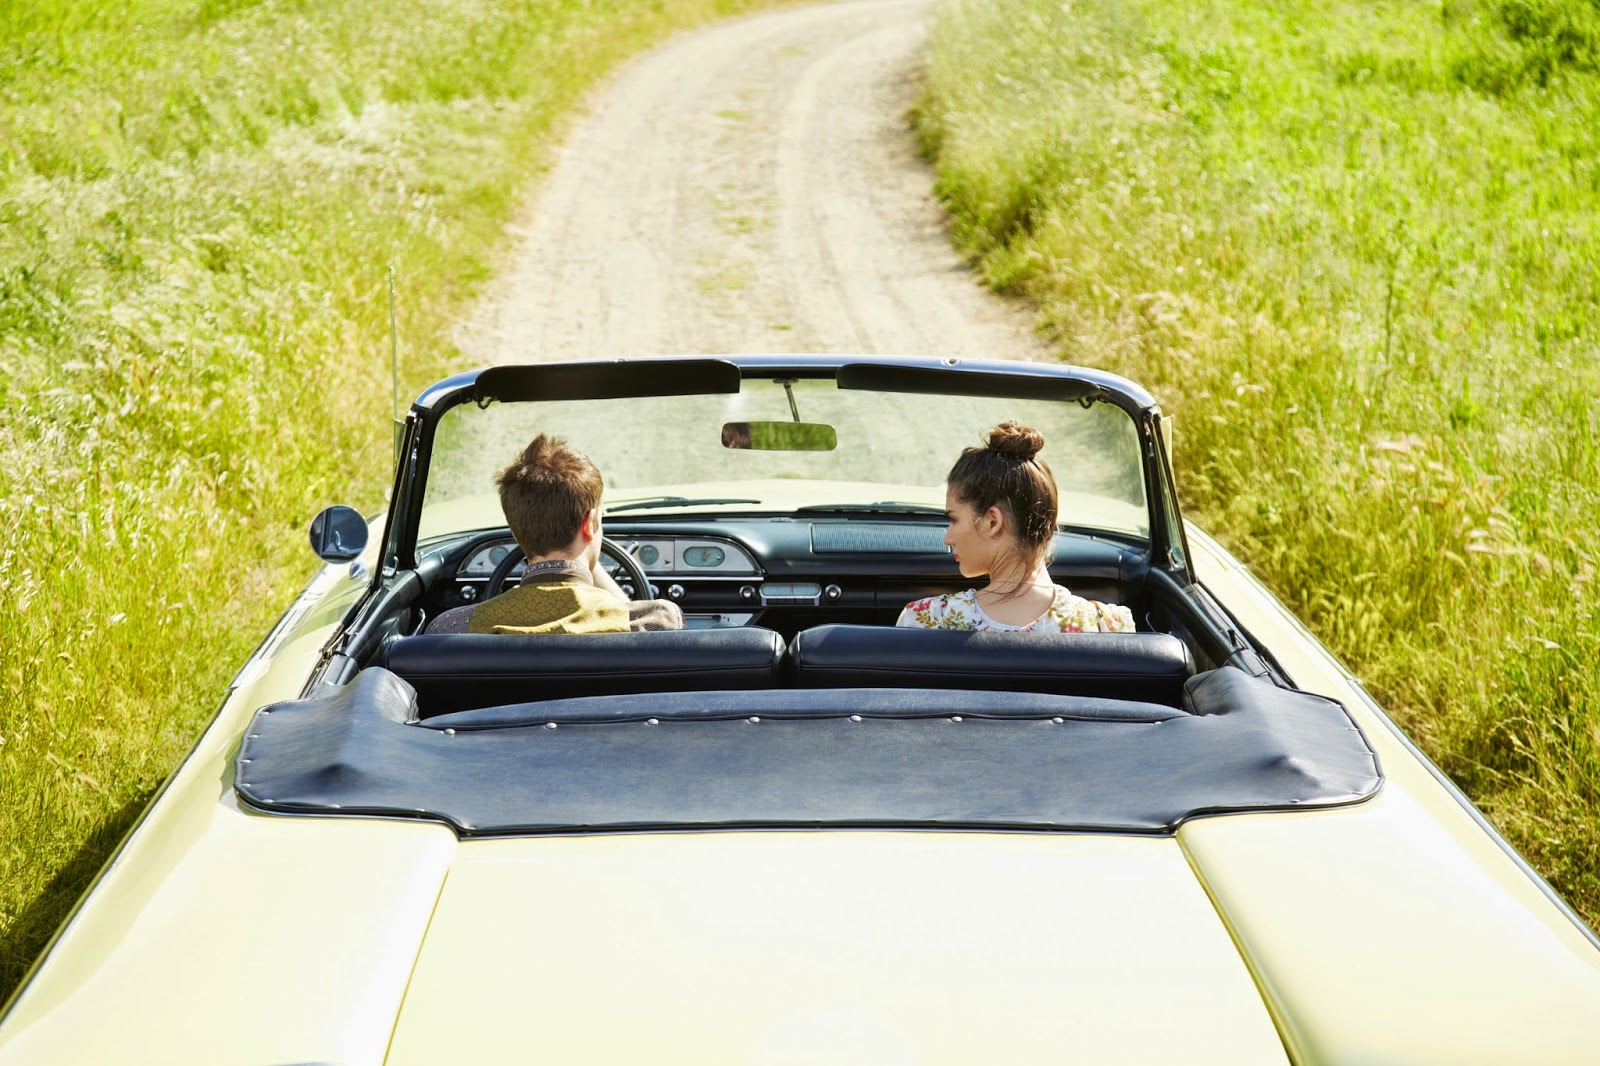 Depending Upon The Age Of Your Vehicle Insurance Company May Not Pay For Full Replacement Cost Convertible Top If It Is Torn From